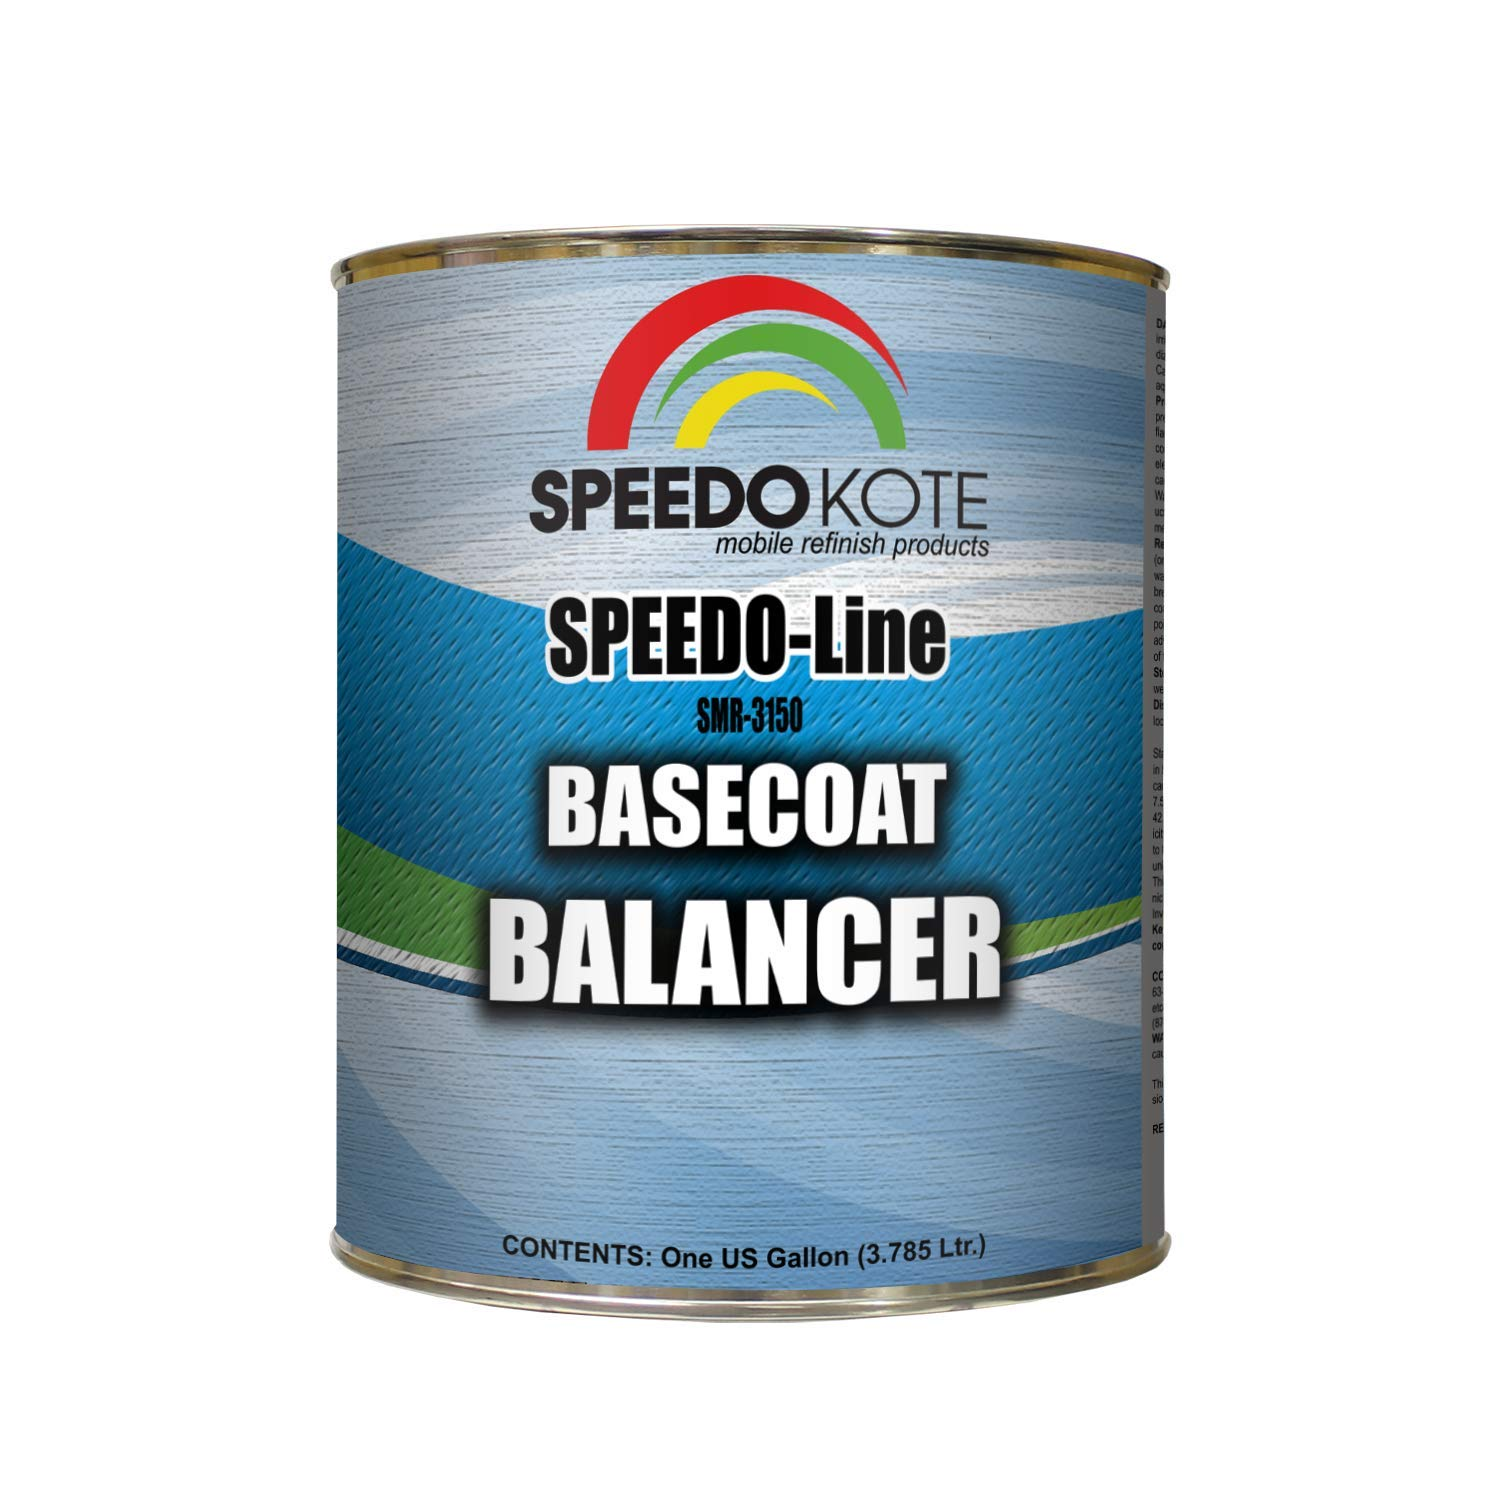 Speedokote Basecoat Balancer for automotive base coat, One Gallon SMR-3150 by Speedokote (Image #1)